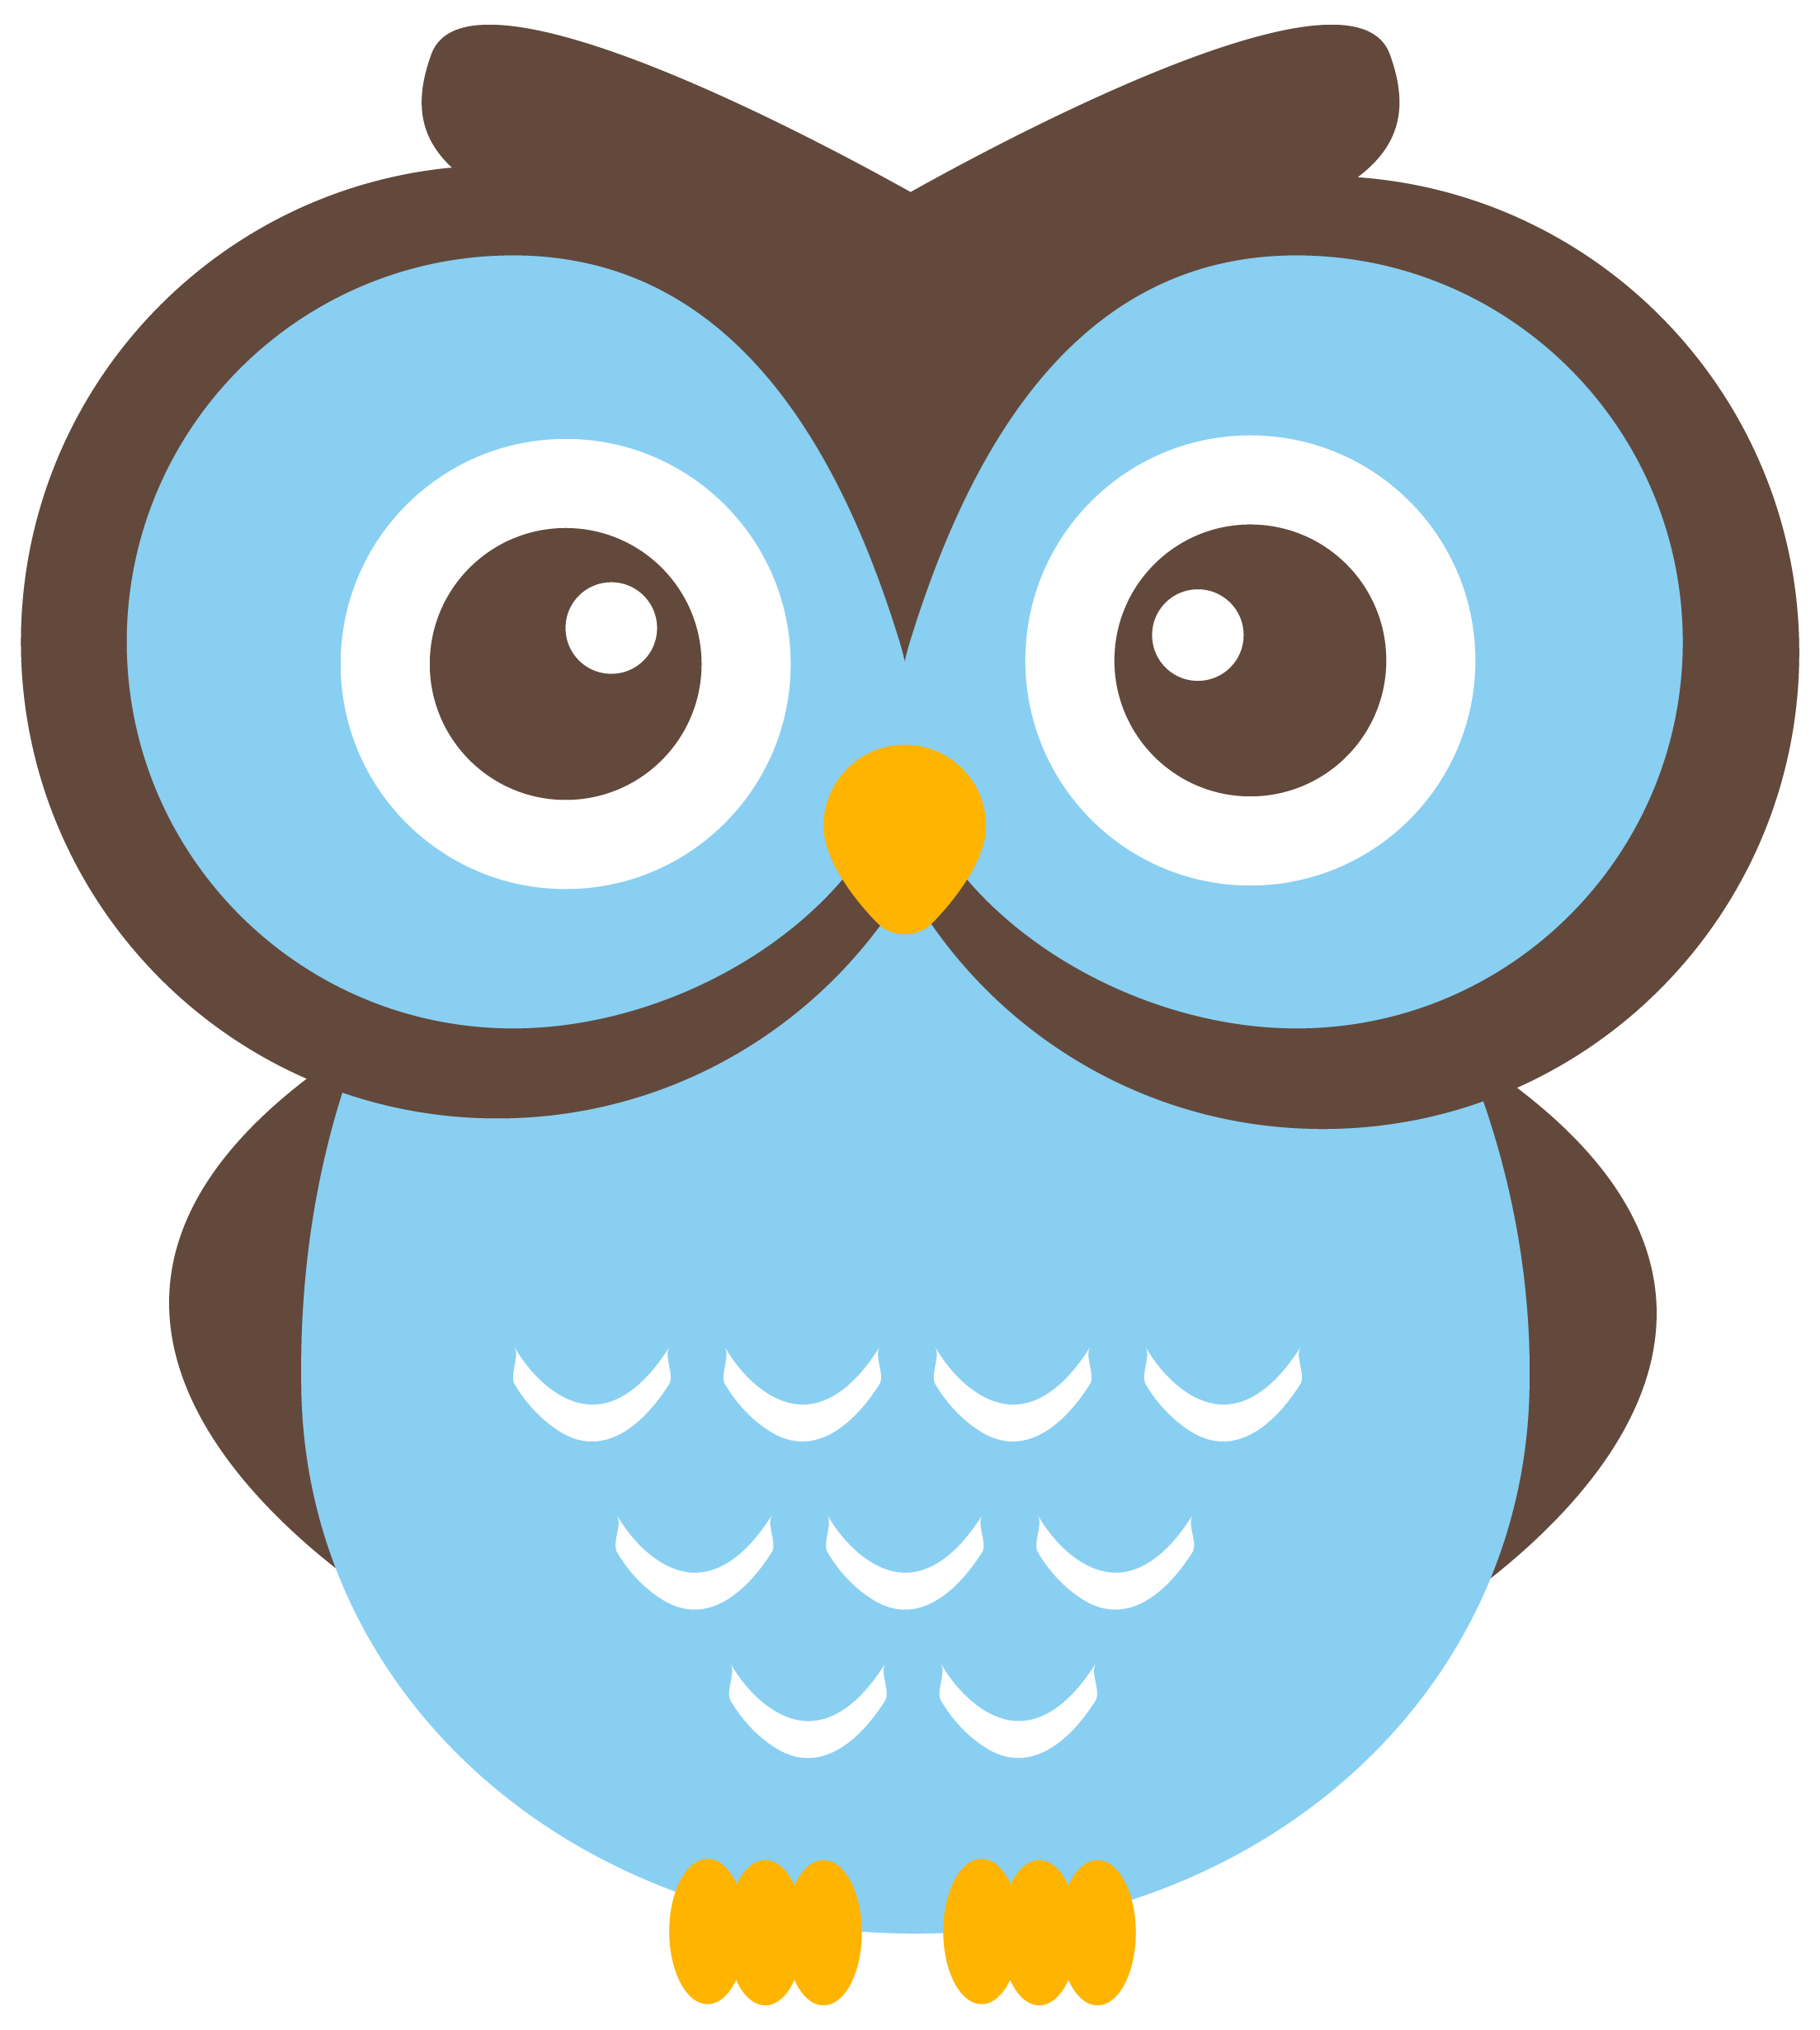 Free clipart image library. Owl clip art cartoon banner royalty free stock